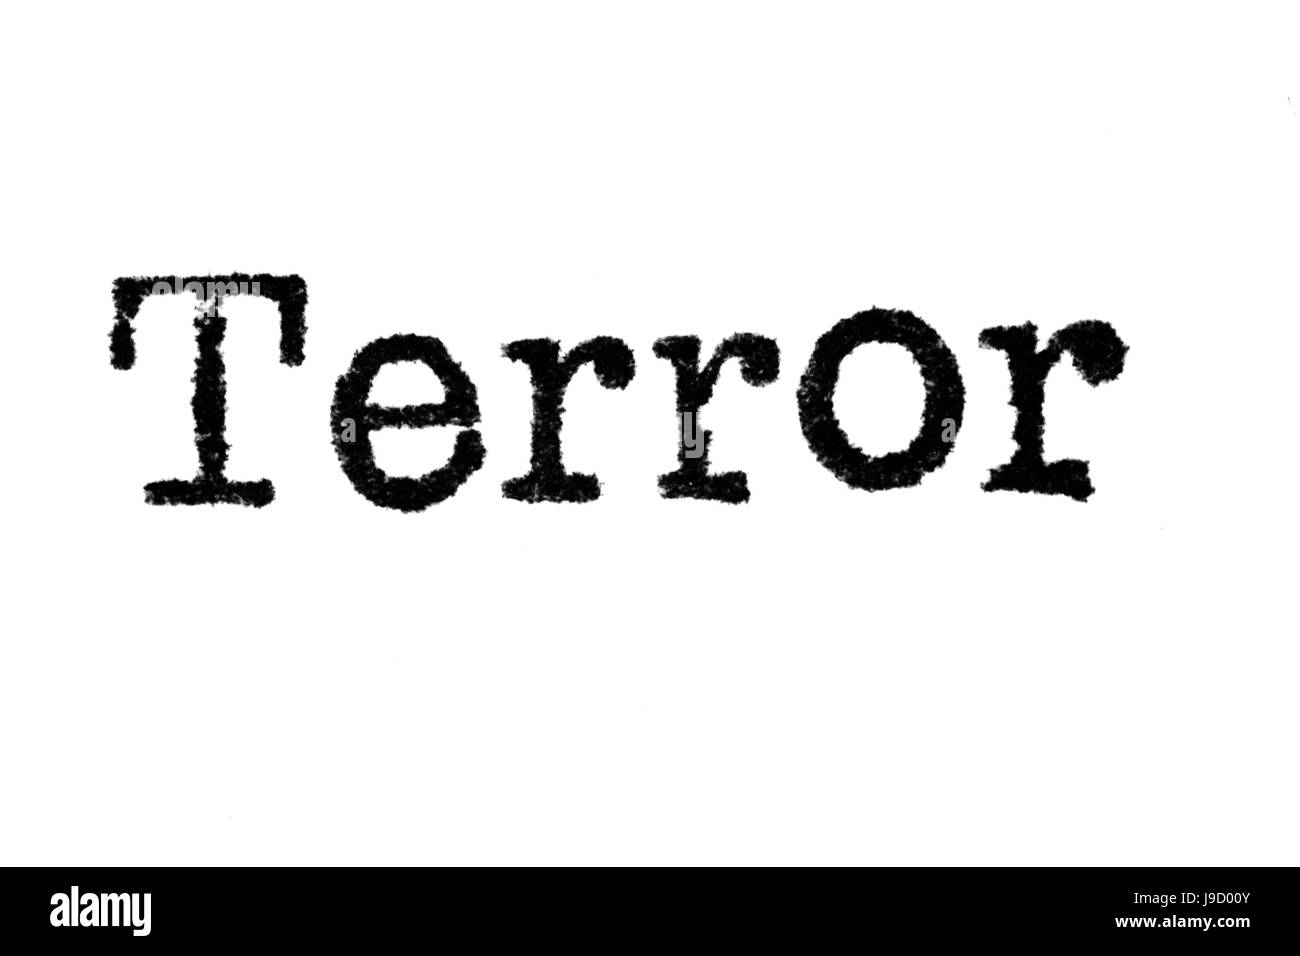 The word 'Terror' from a typewriter on a white background - Stock Image